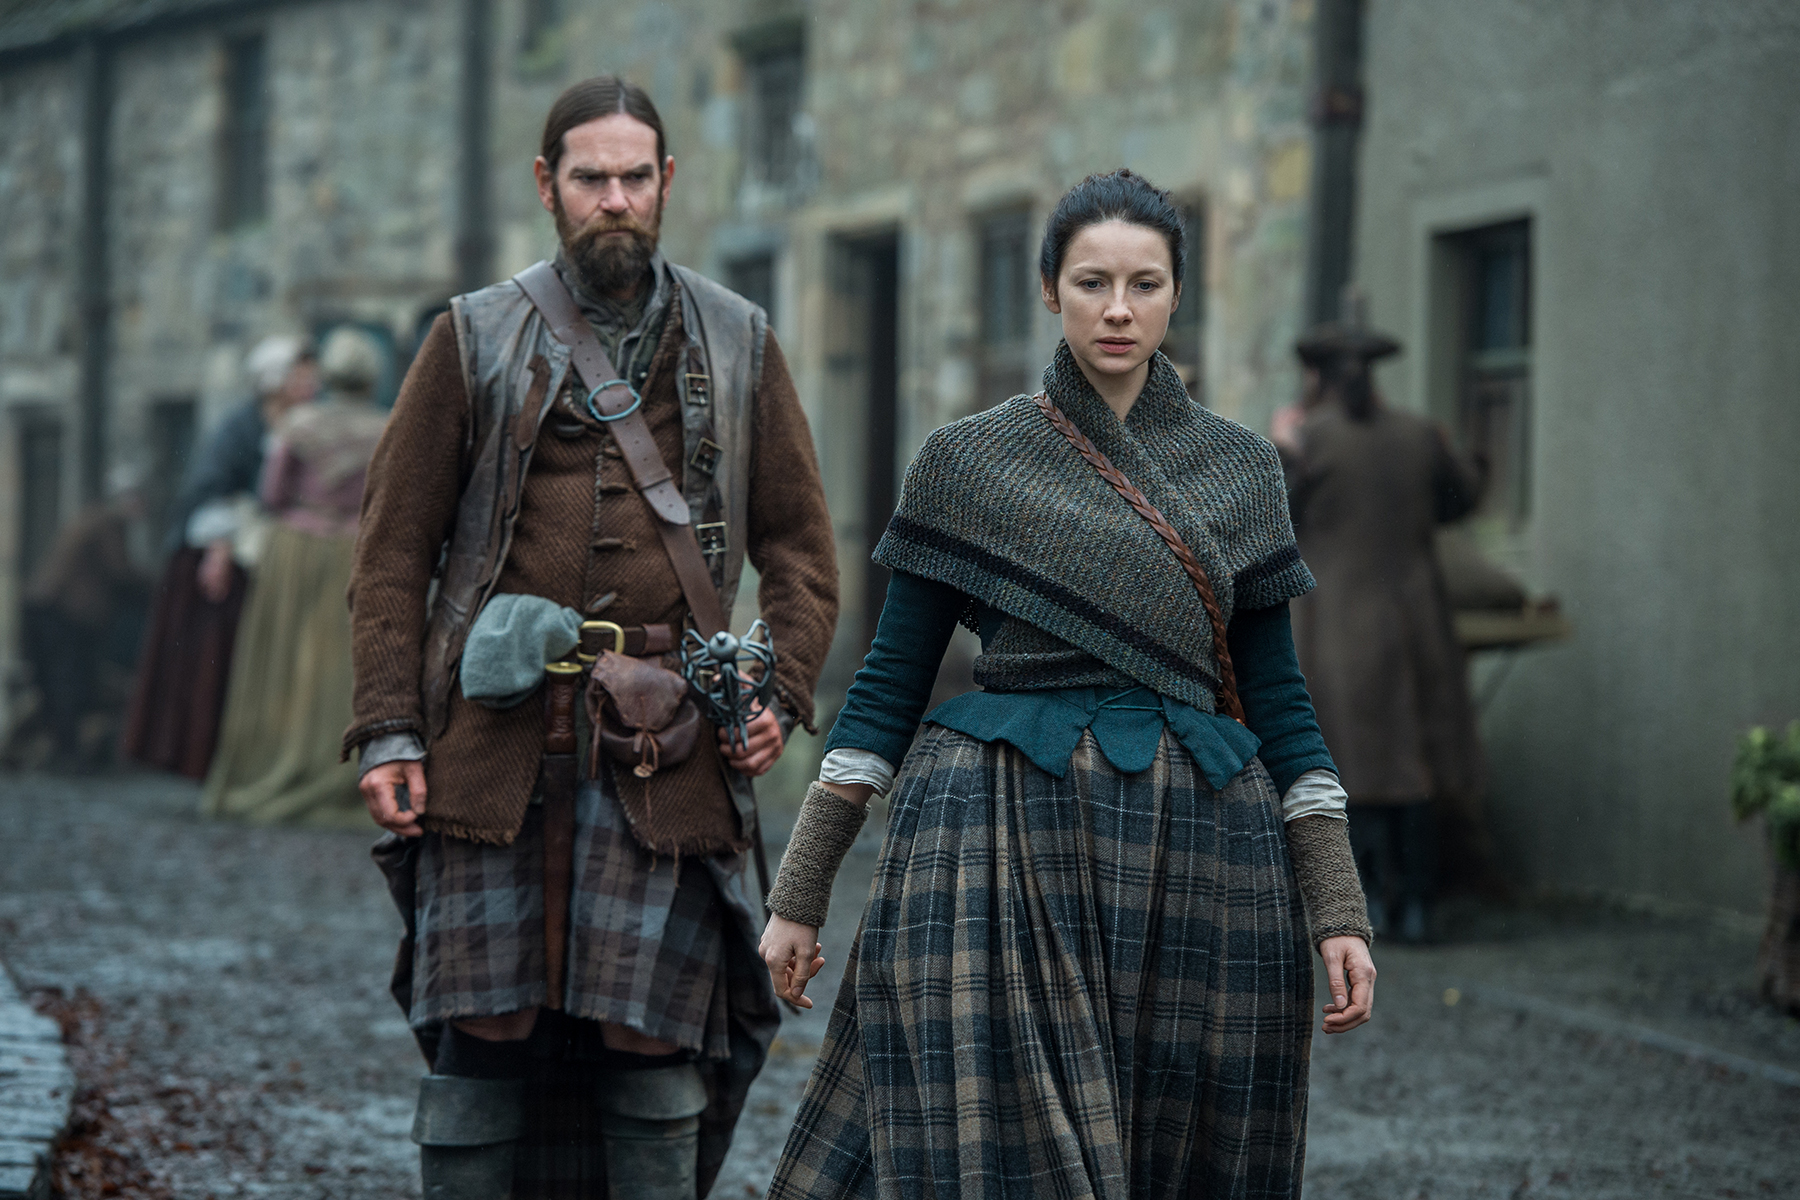 Duncan Lacroix as Murtagh Fitzgibbons and Caitriona Balfe as Clare Fraser in 'Outlander' Season 2, Episode 12 — 'The Hail Mary'